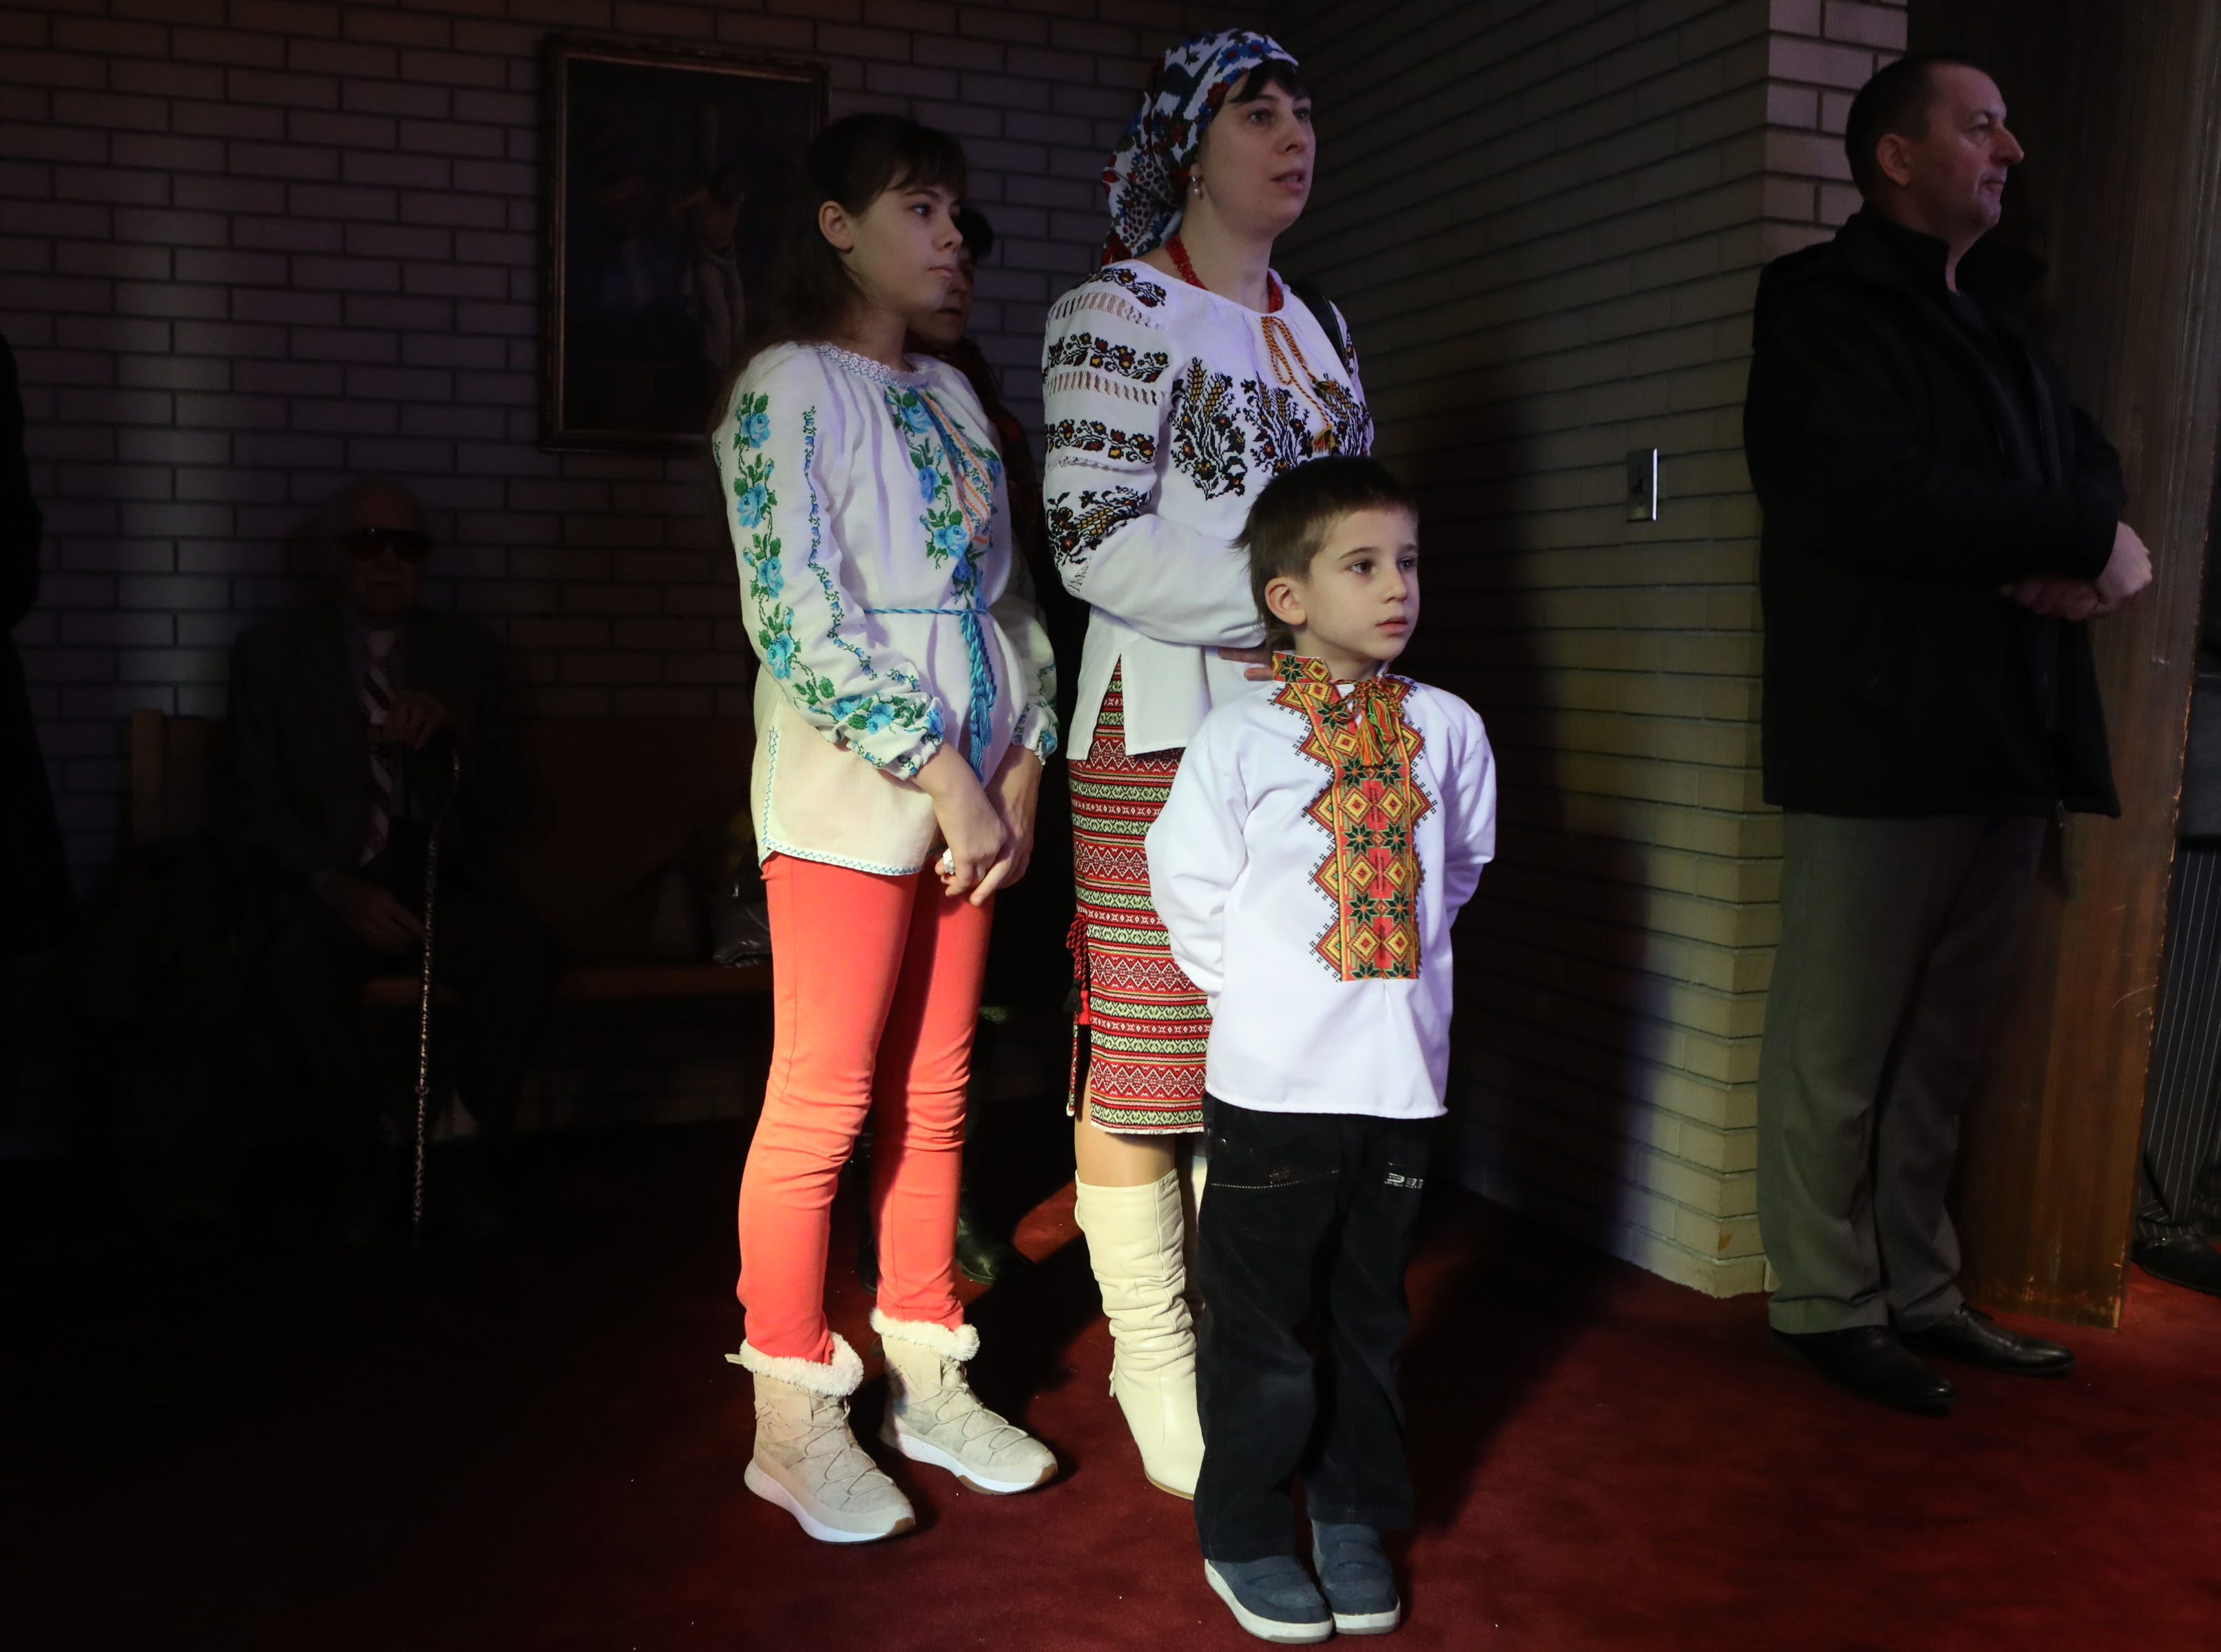 Nataliia Holchuk stands with her children, Marharyta Holchuk, 12, and Olekjii Holchuk, 5, at the Ukrainian Orthodox Holy Ascension Church, in Clifton. Monday, January 7, 2019